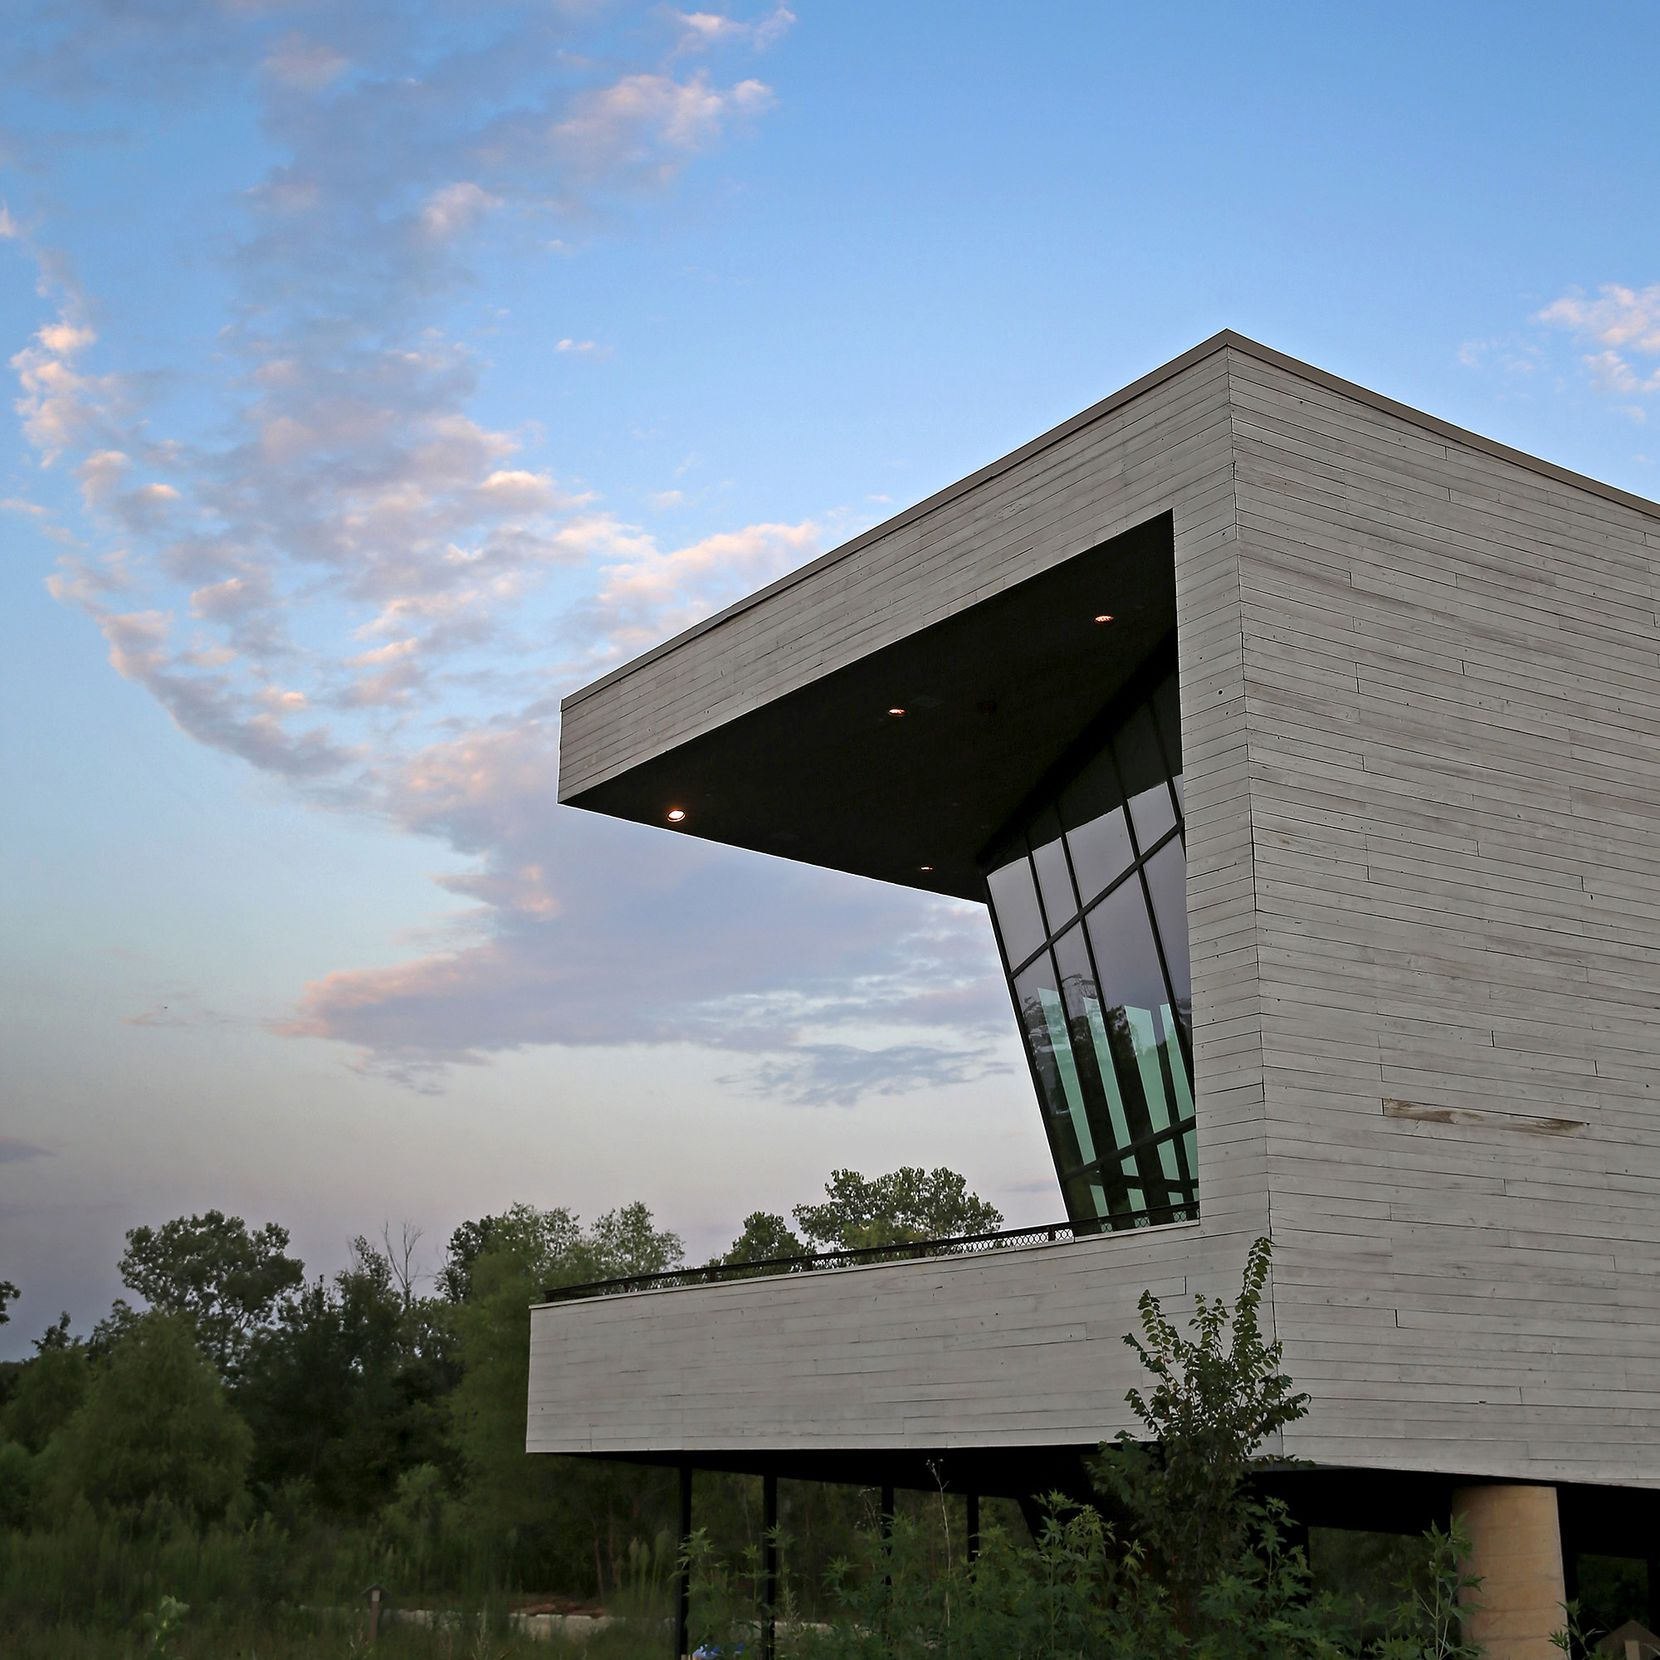 Antoine Predock's design for the Trinity Audubon Center is complex and quirky in the best ways.